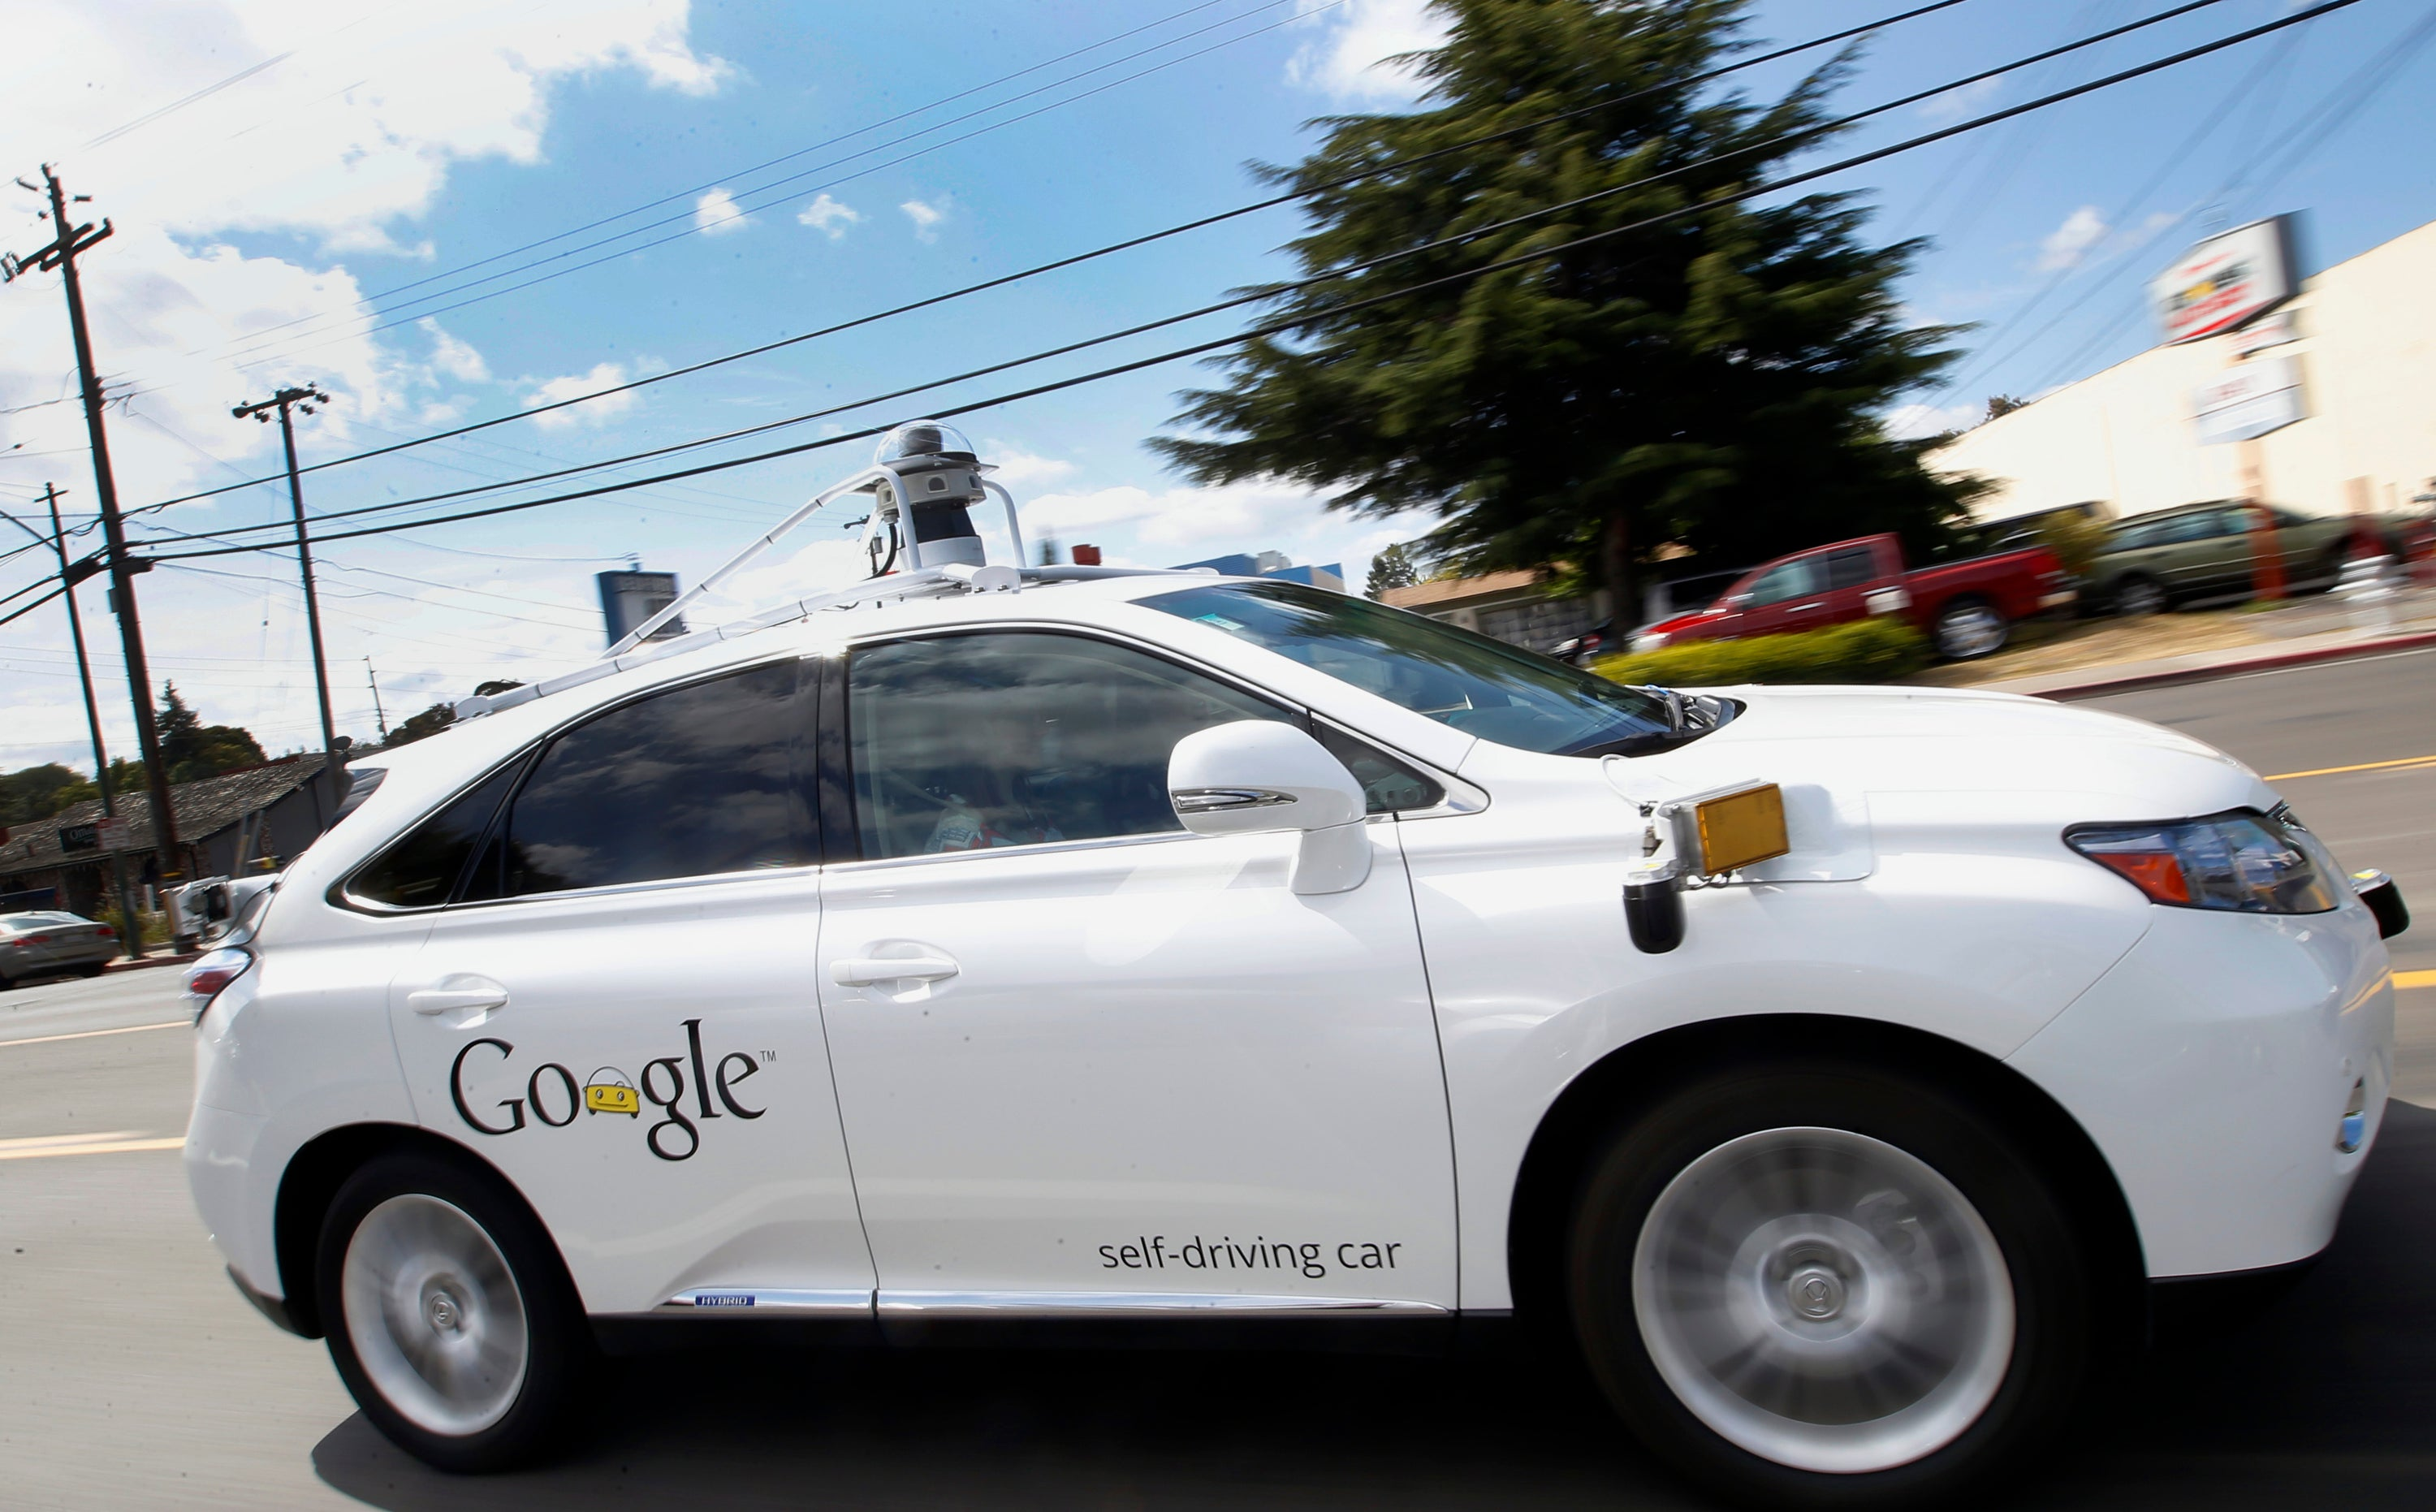 People Are Going To Honk At Self-Driving Cars Because Drivers Are Witless And Too Angry